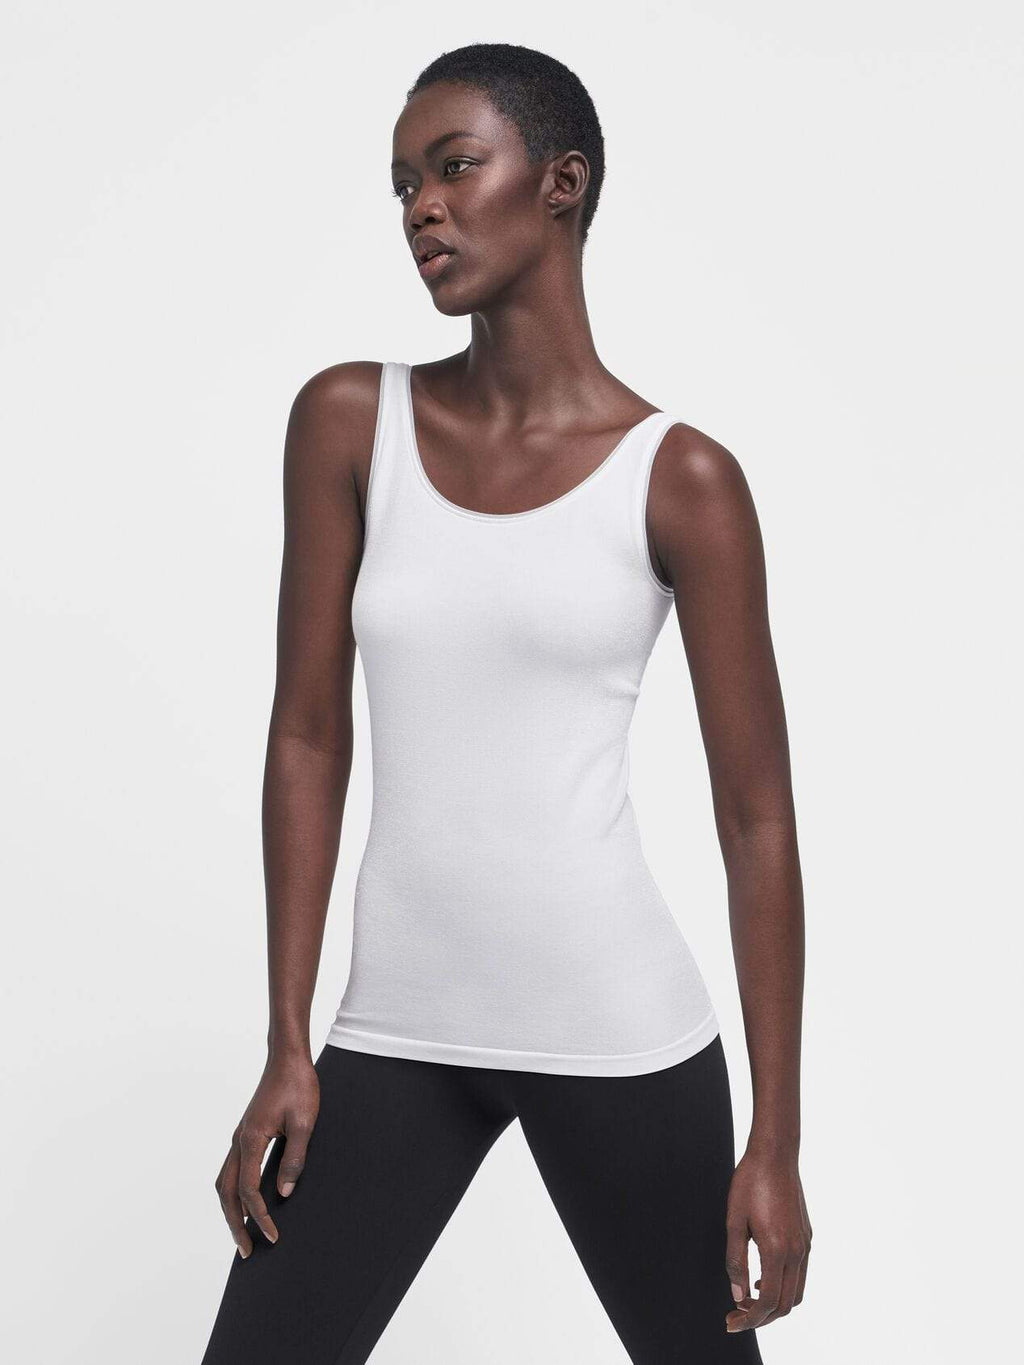 Wolford Ready To Wear By Wolford Wolford Jamaika Top White 55035 izzi-of-baslow